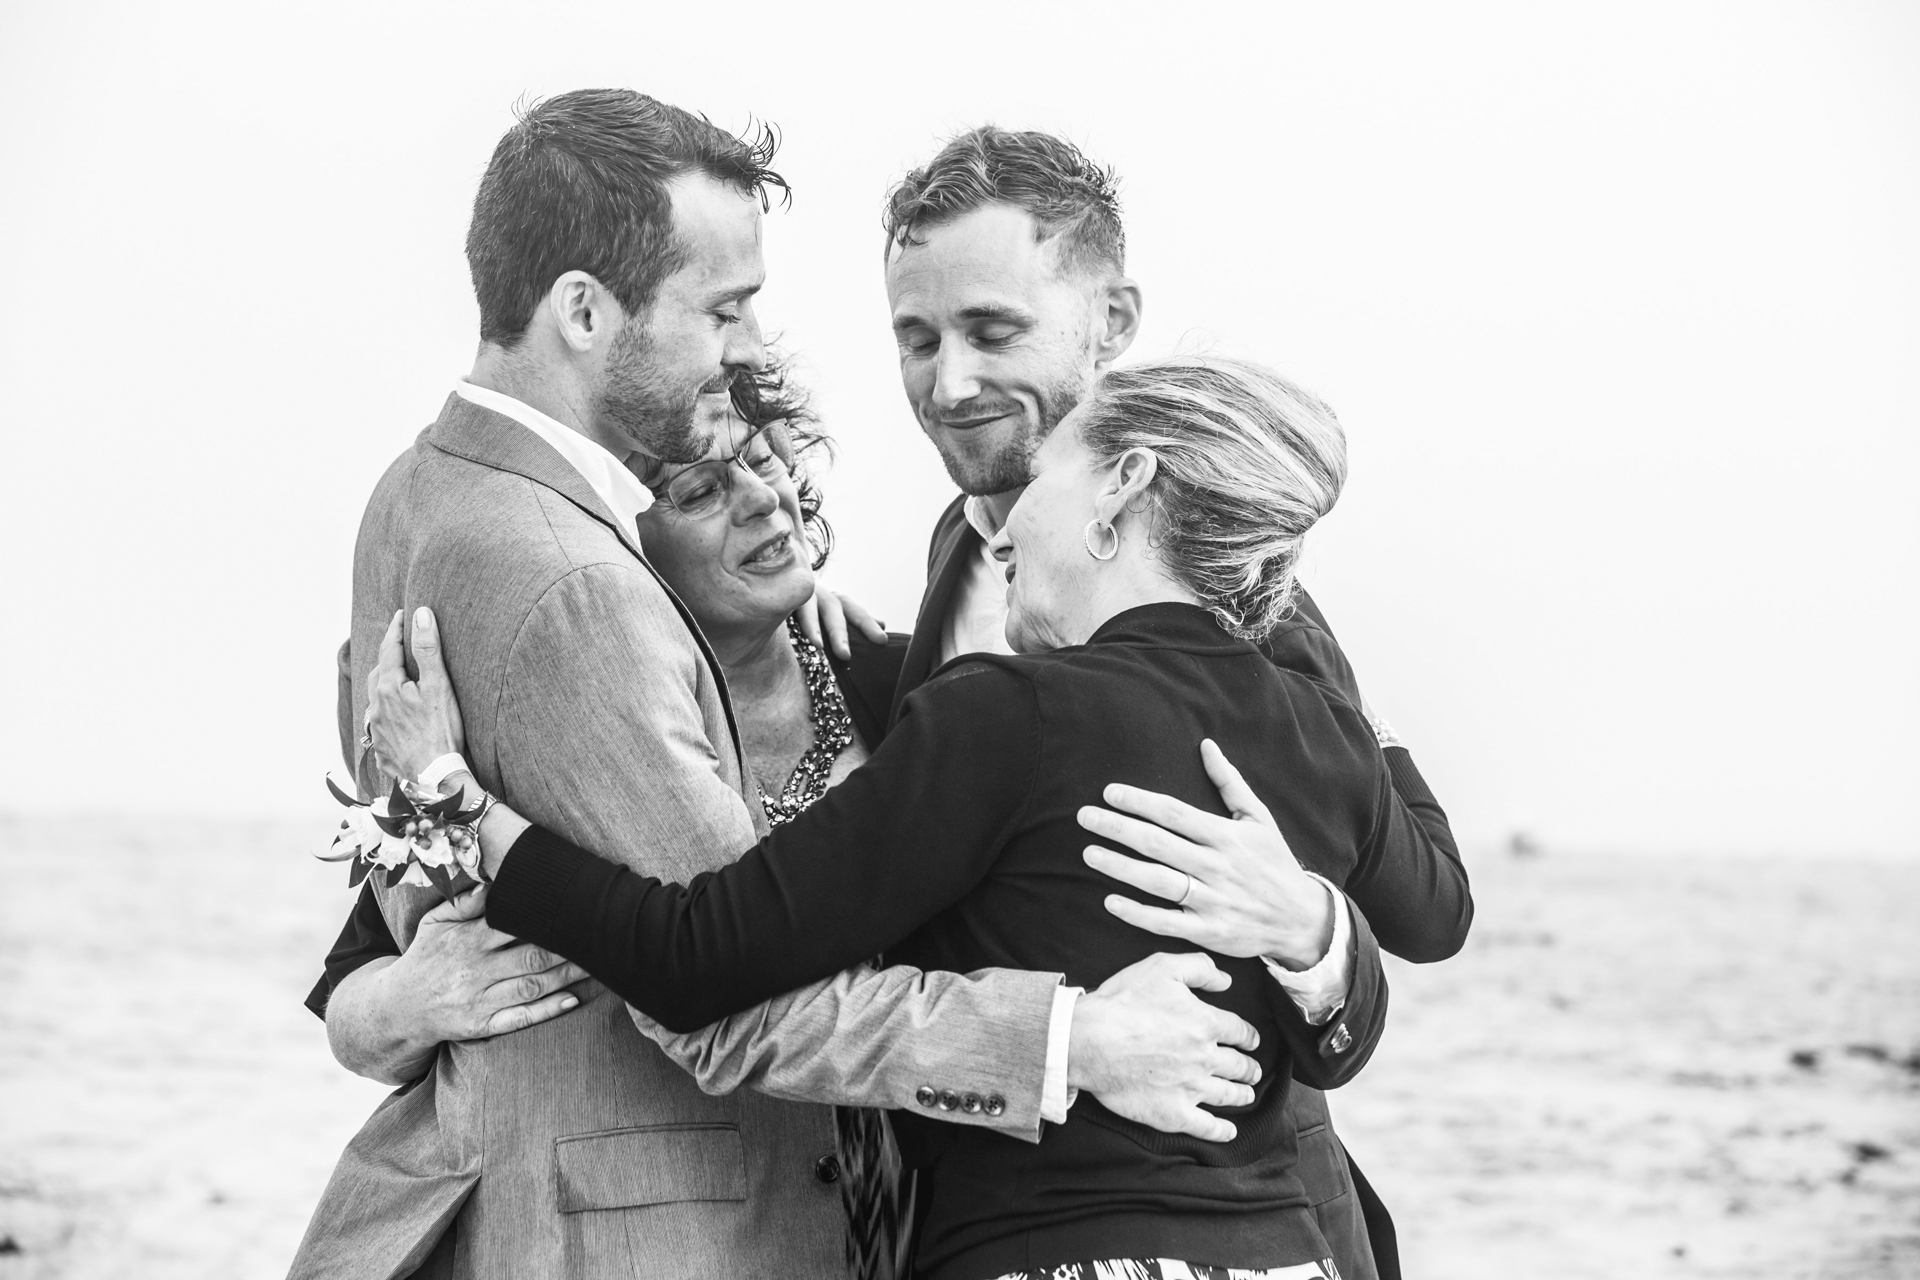 Image from a beach elopement ceremony at Nantucket Island, MA | Grooms share a dance and group hug with their moms after the ceremony.